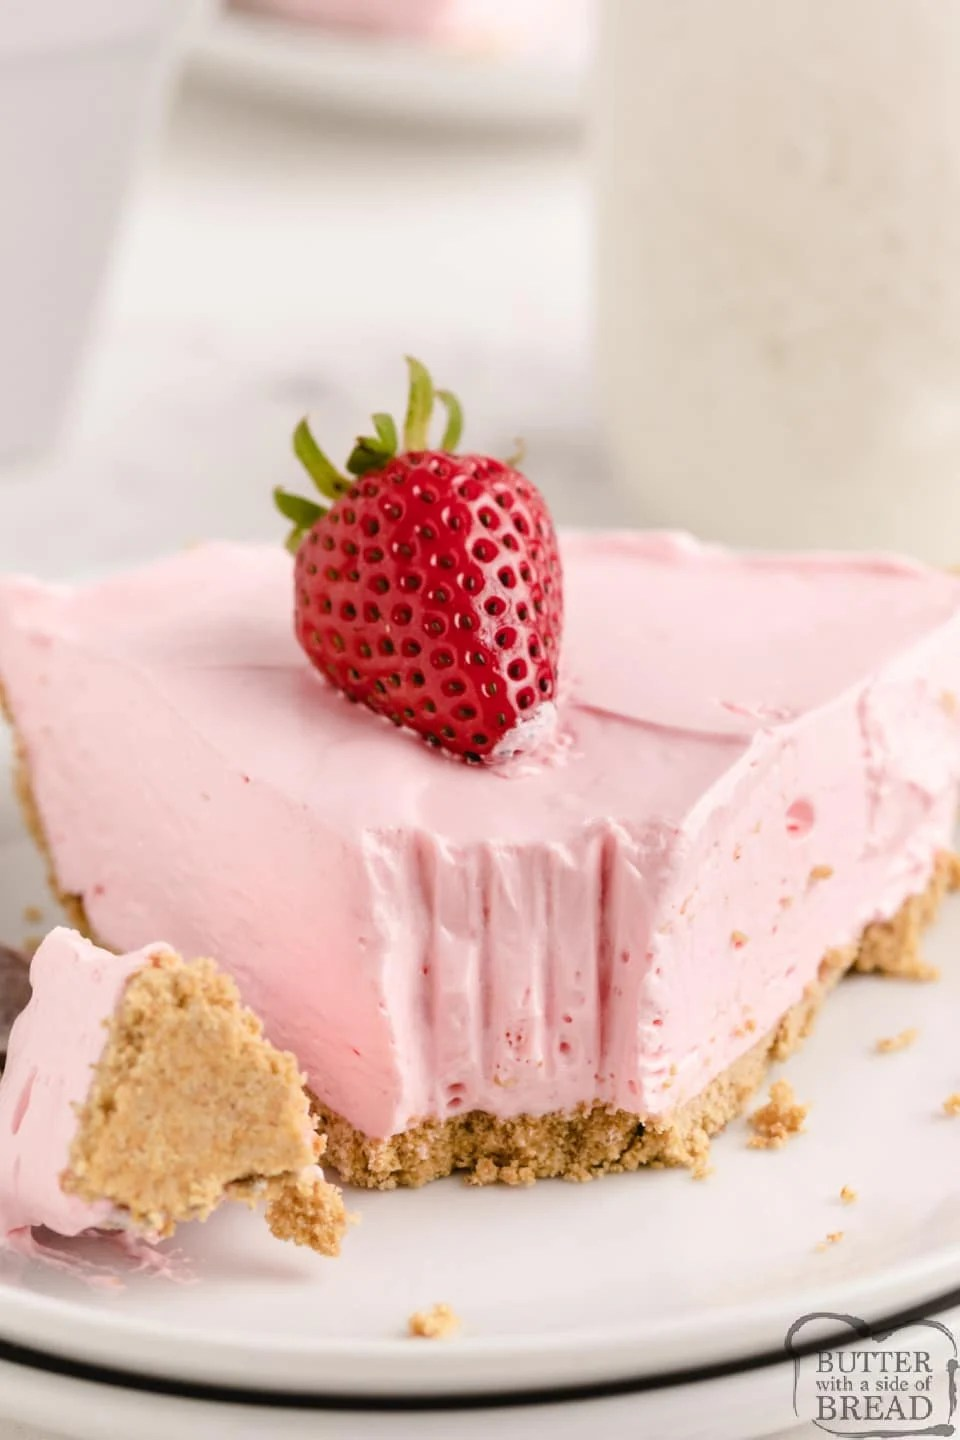 No Bake Kool Aid Pie made with only 4 ingredients and can be made in any flavor you want! Refreshing no bake dessert recipe that is sweet and delicious and so easy to make!